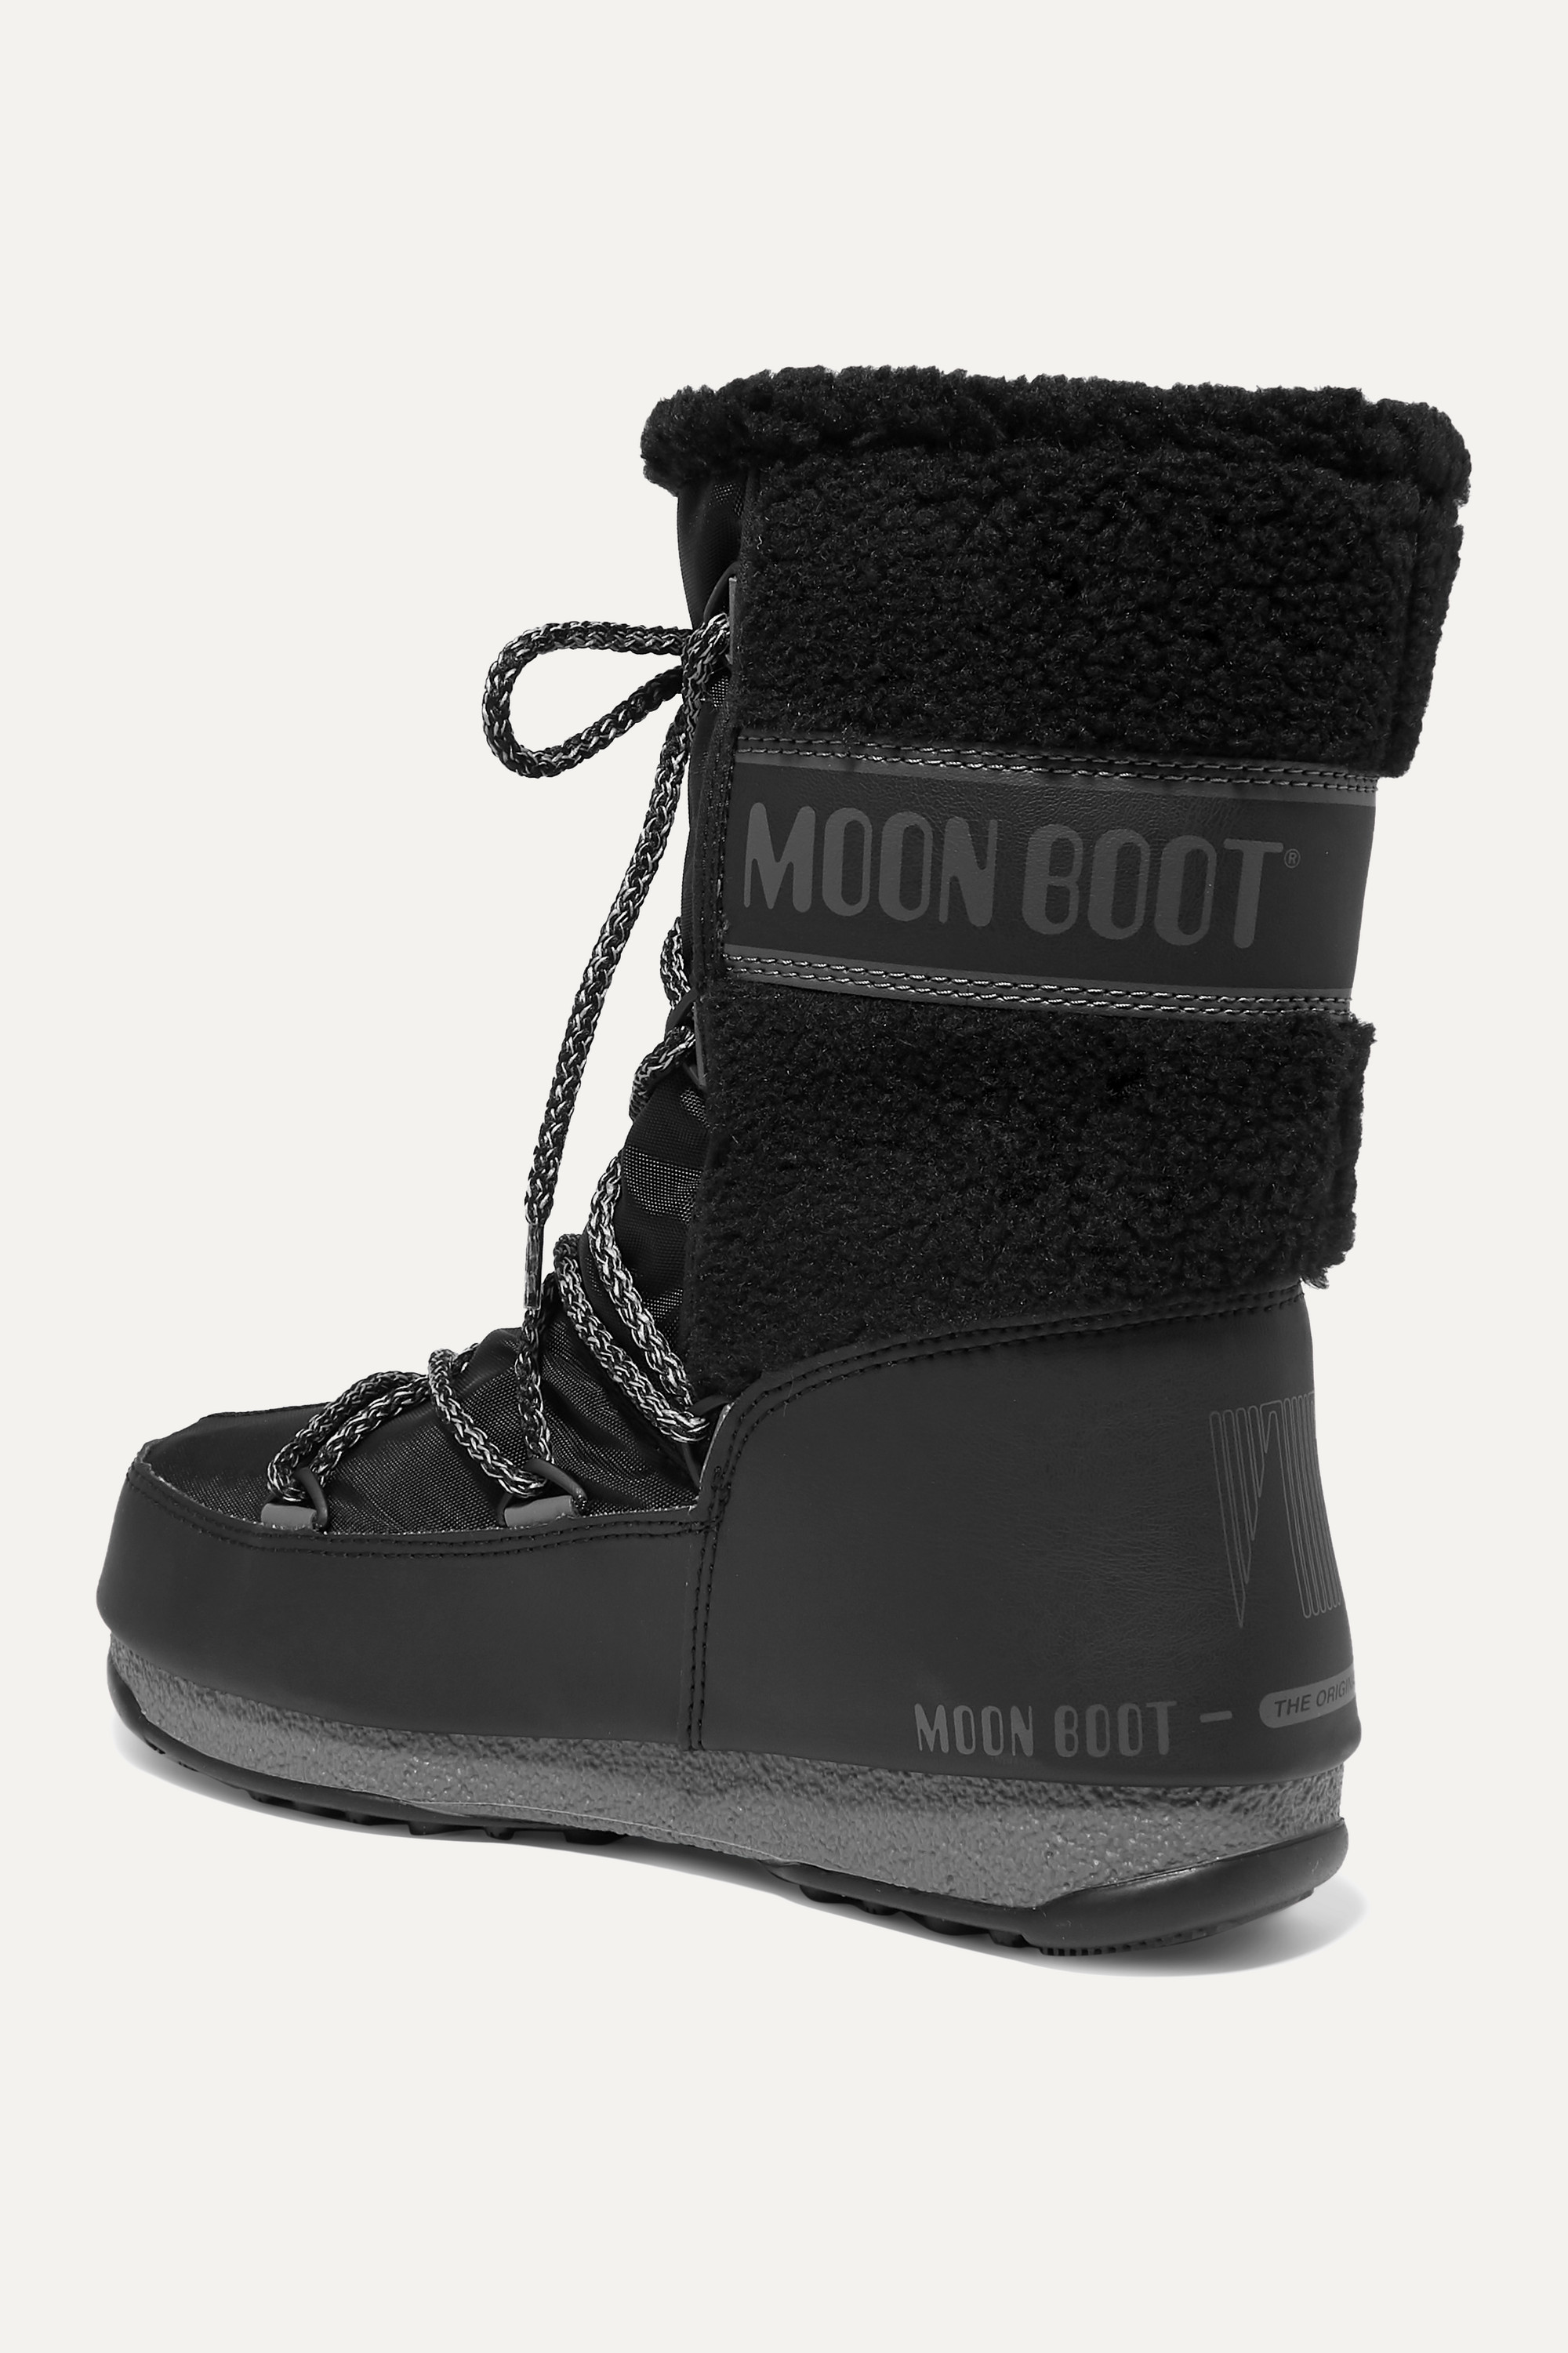 Moon Boot Shell, rubber and wool snow boots